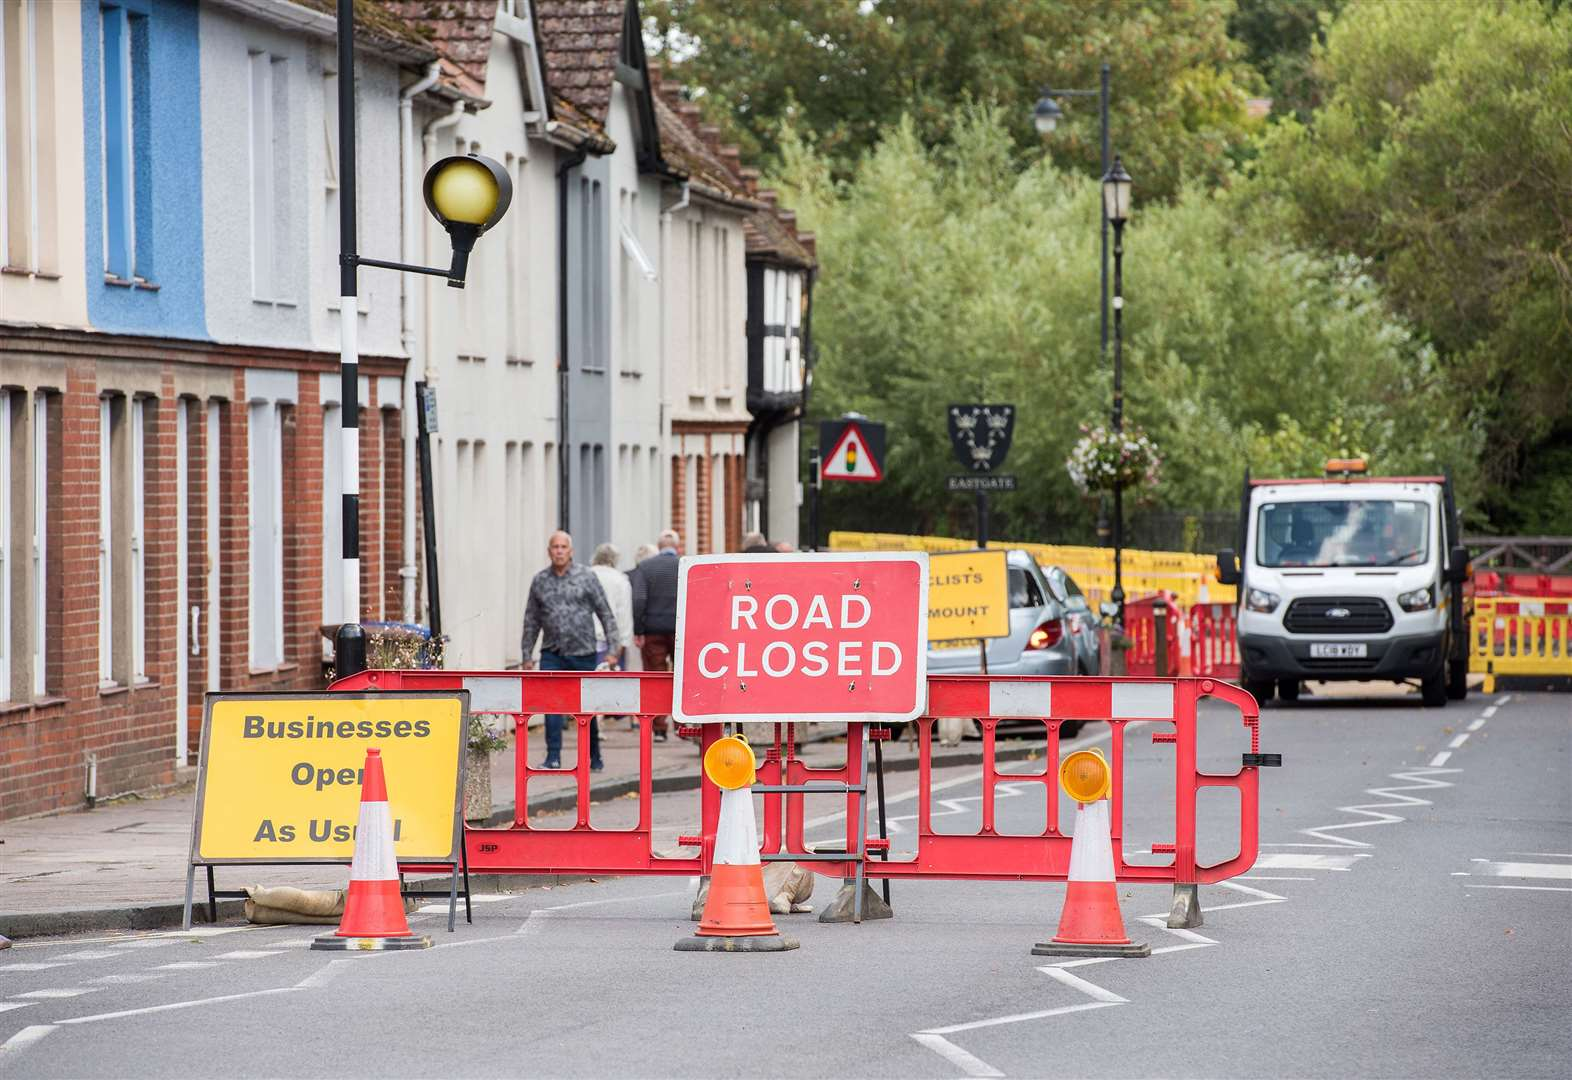 Utilities companies will require roadworks permits from April